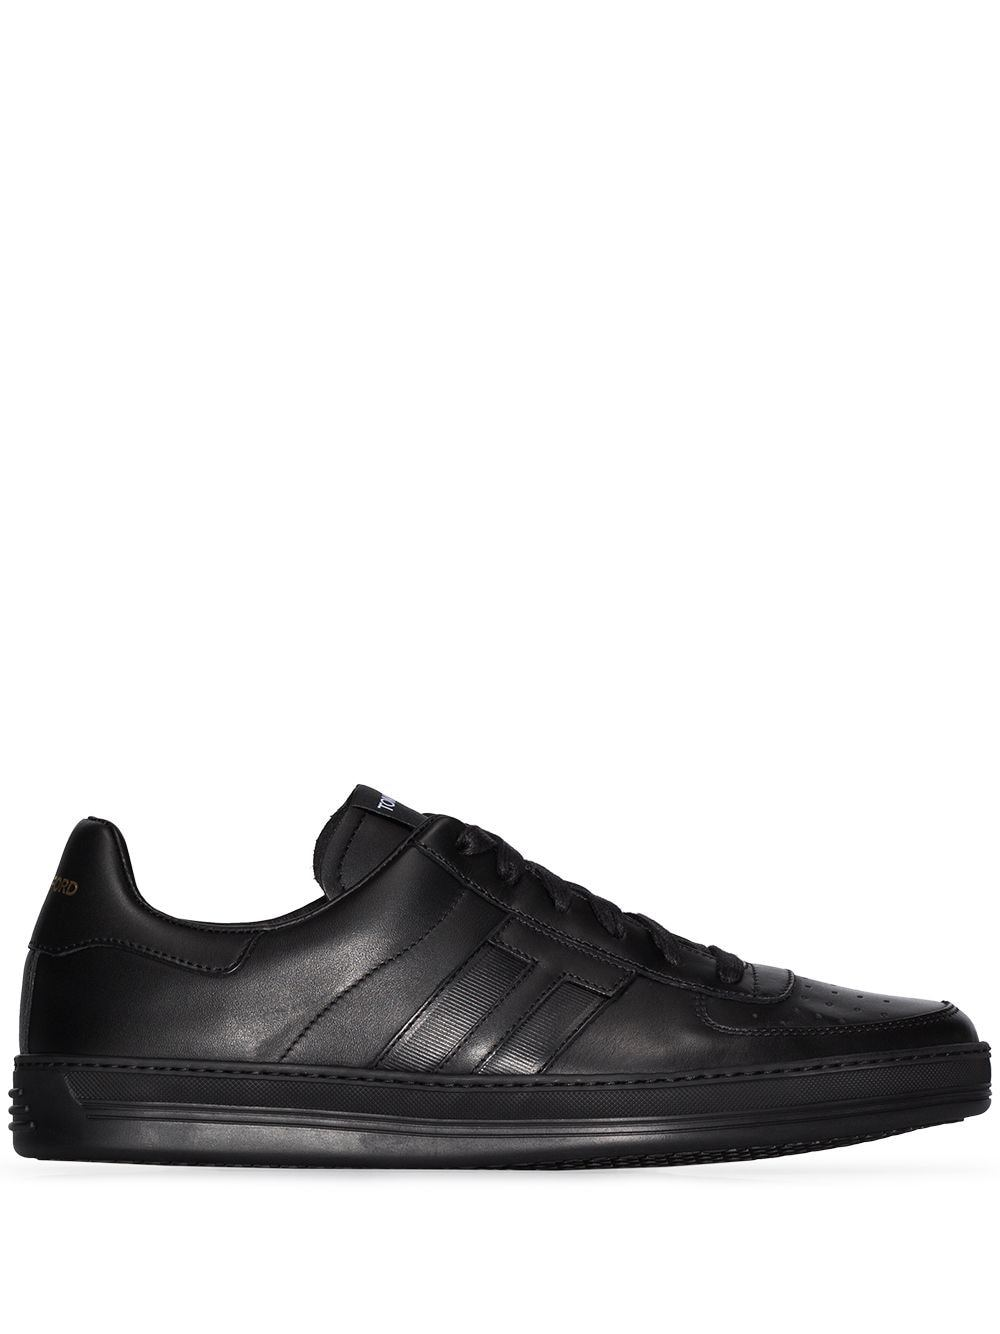 TOM FORD T Logo Sneakers Black